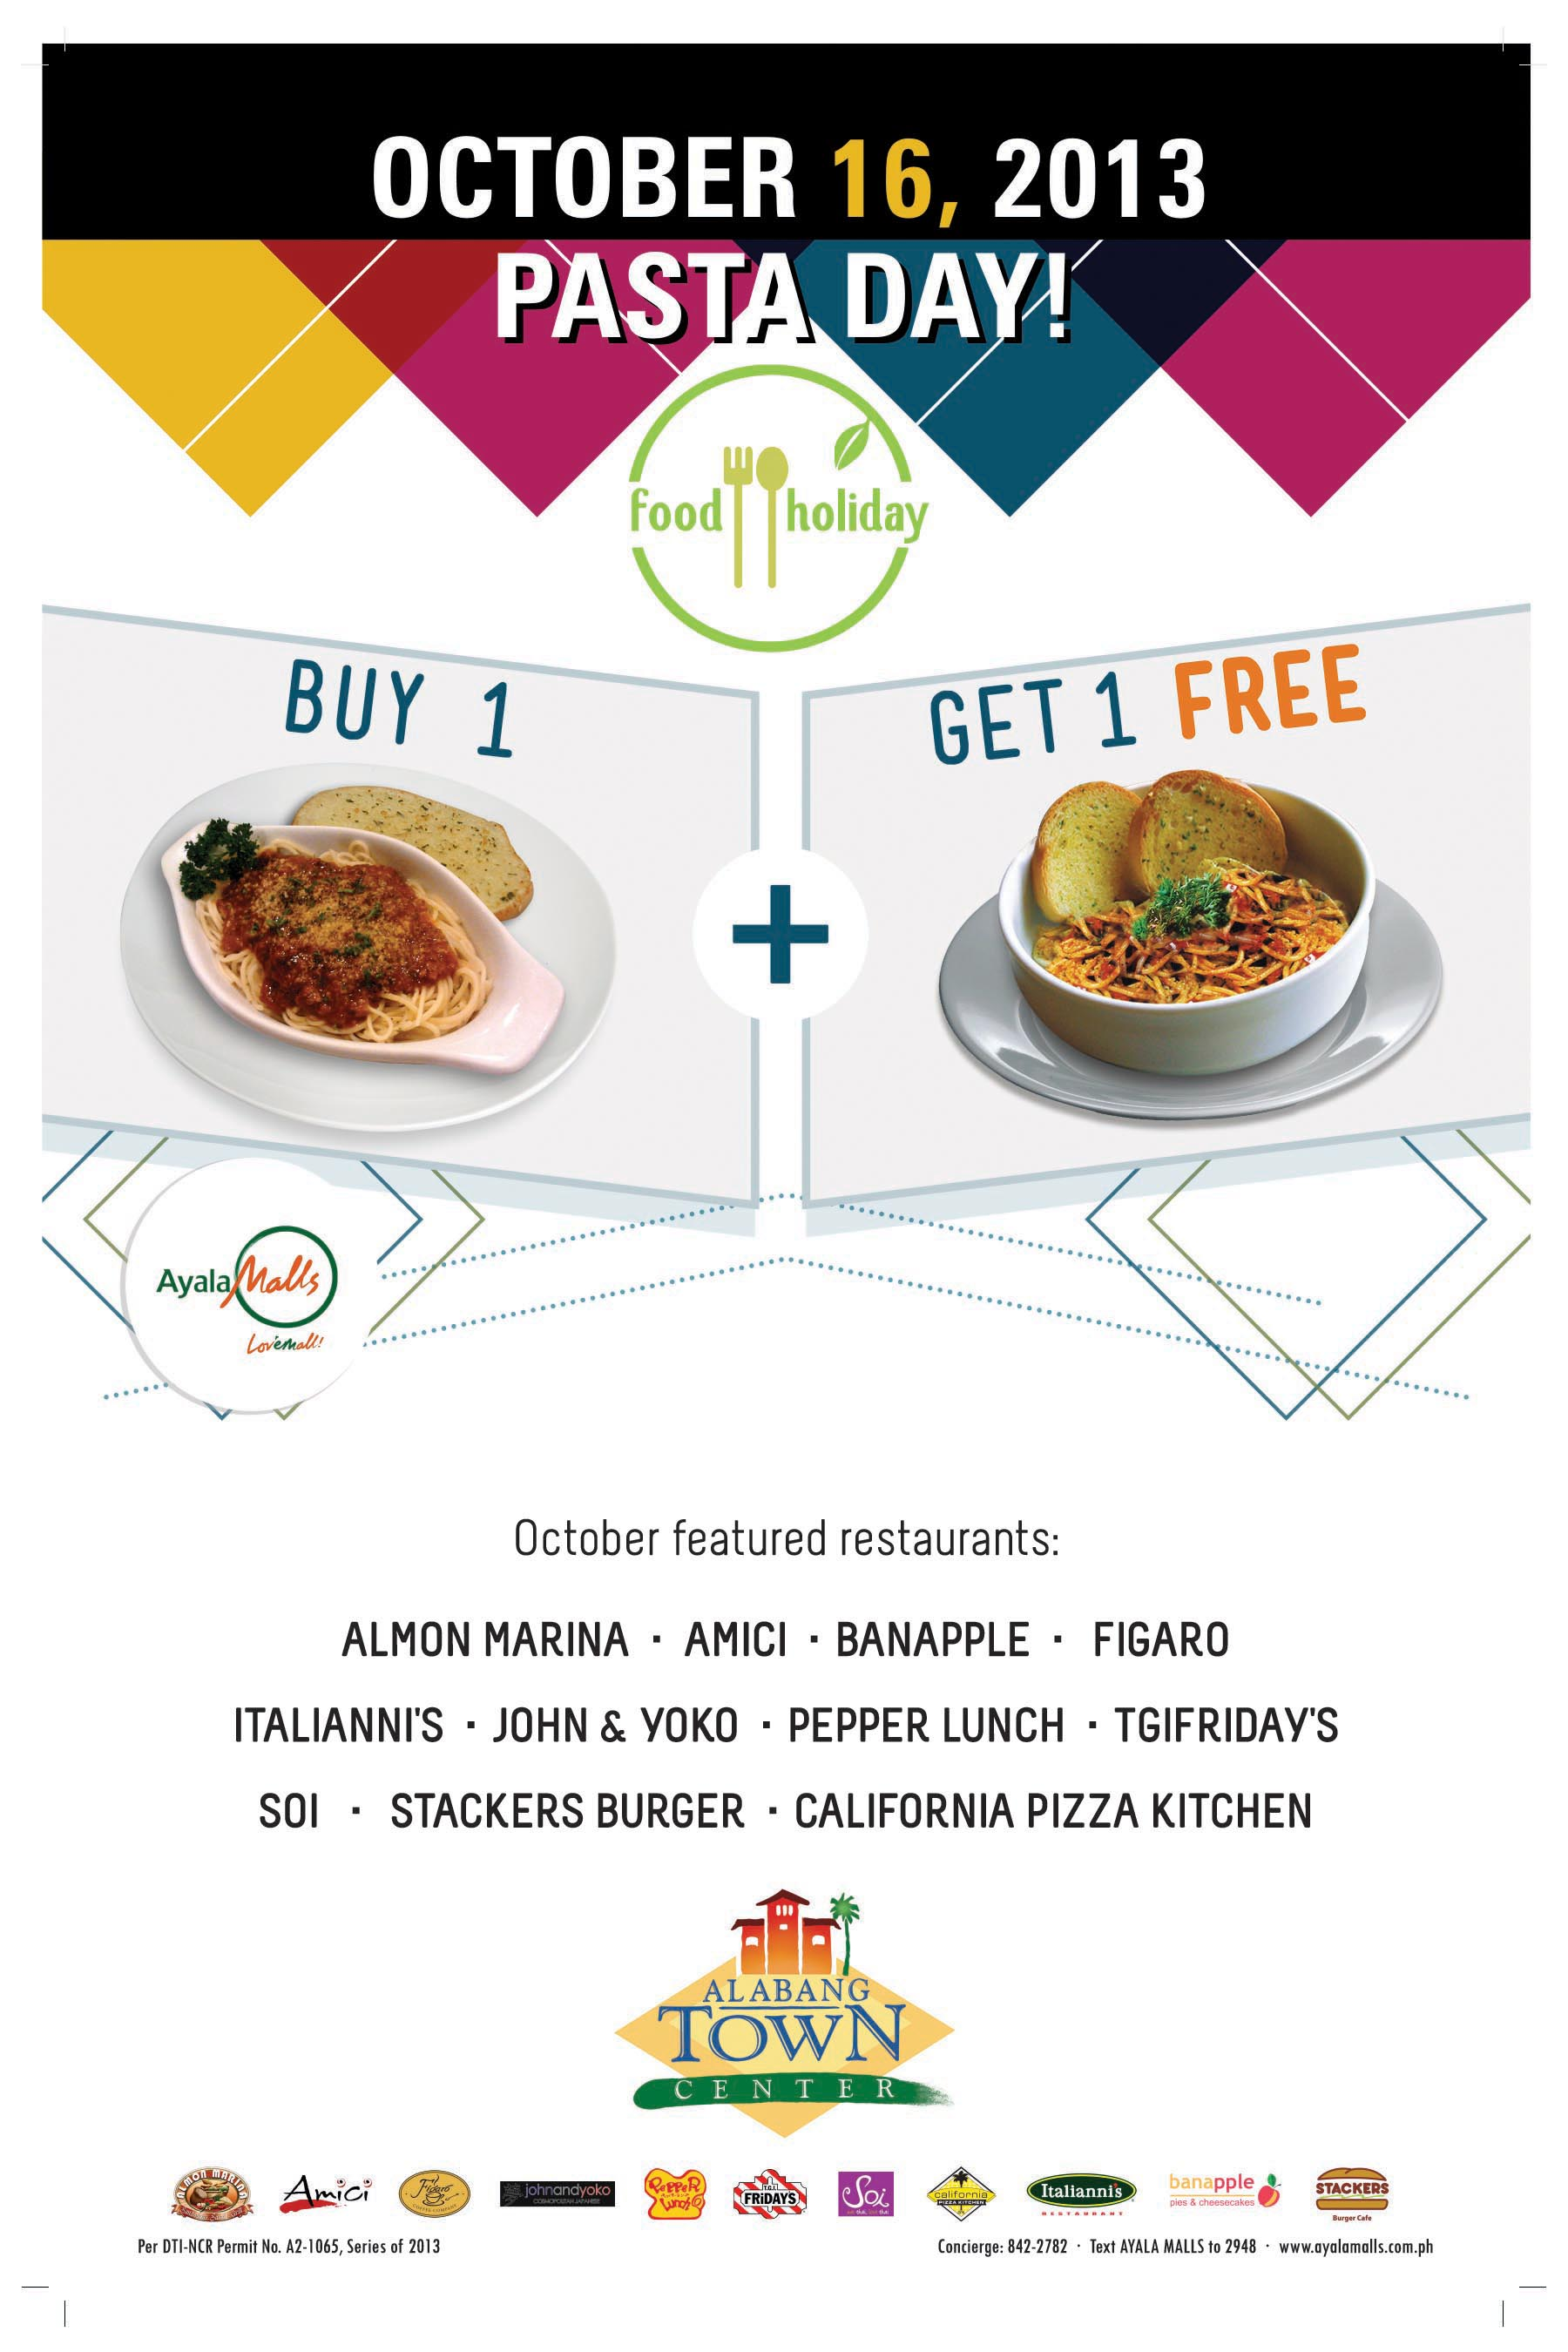 October 16 is Pasta Day at Alabang Town Center! Buy 1, Get 1 FREE ...